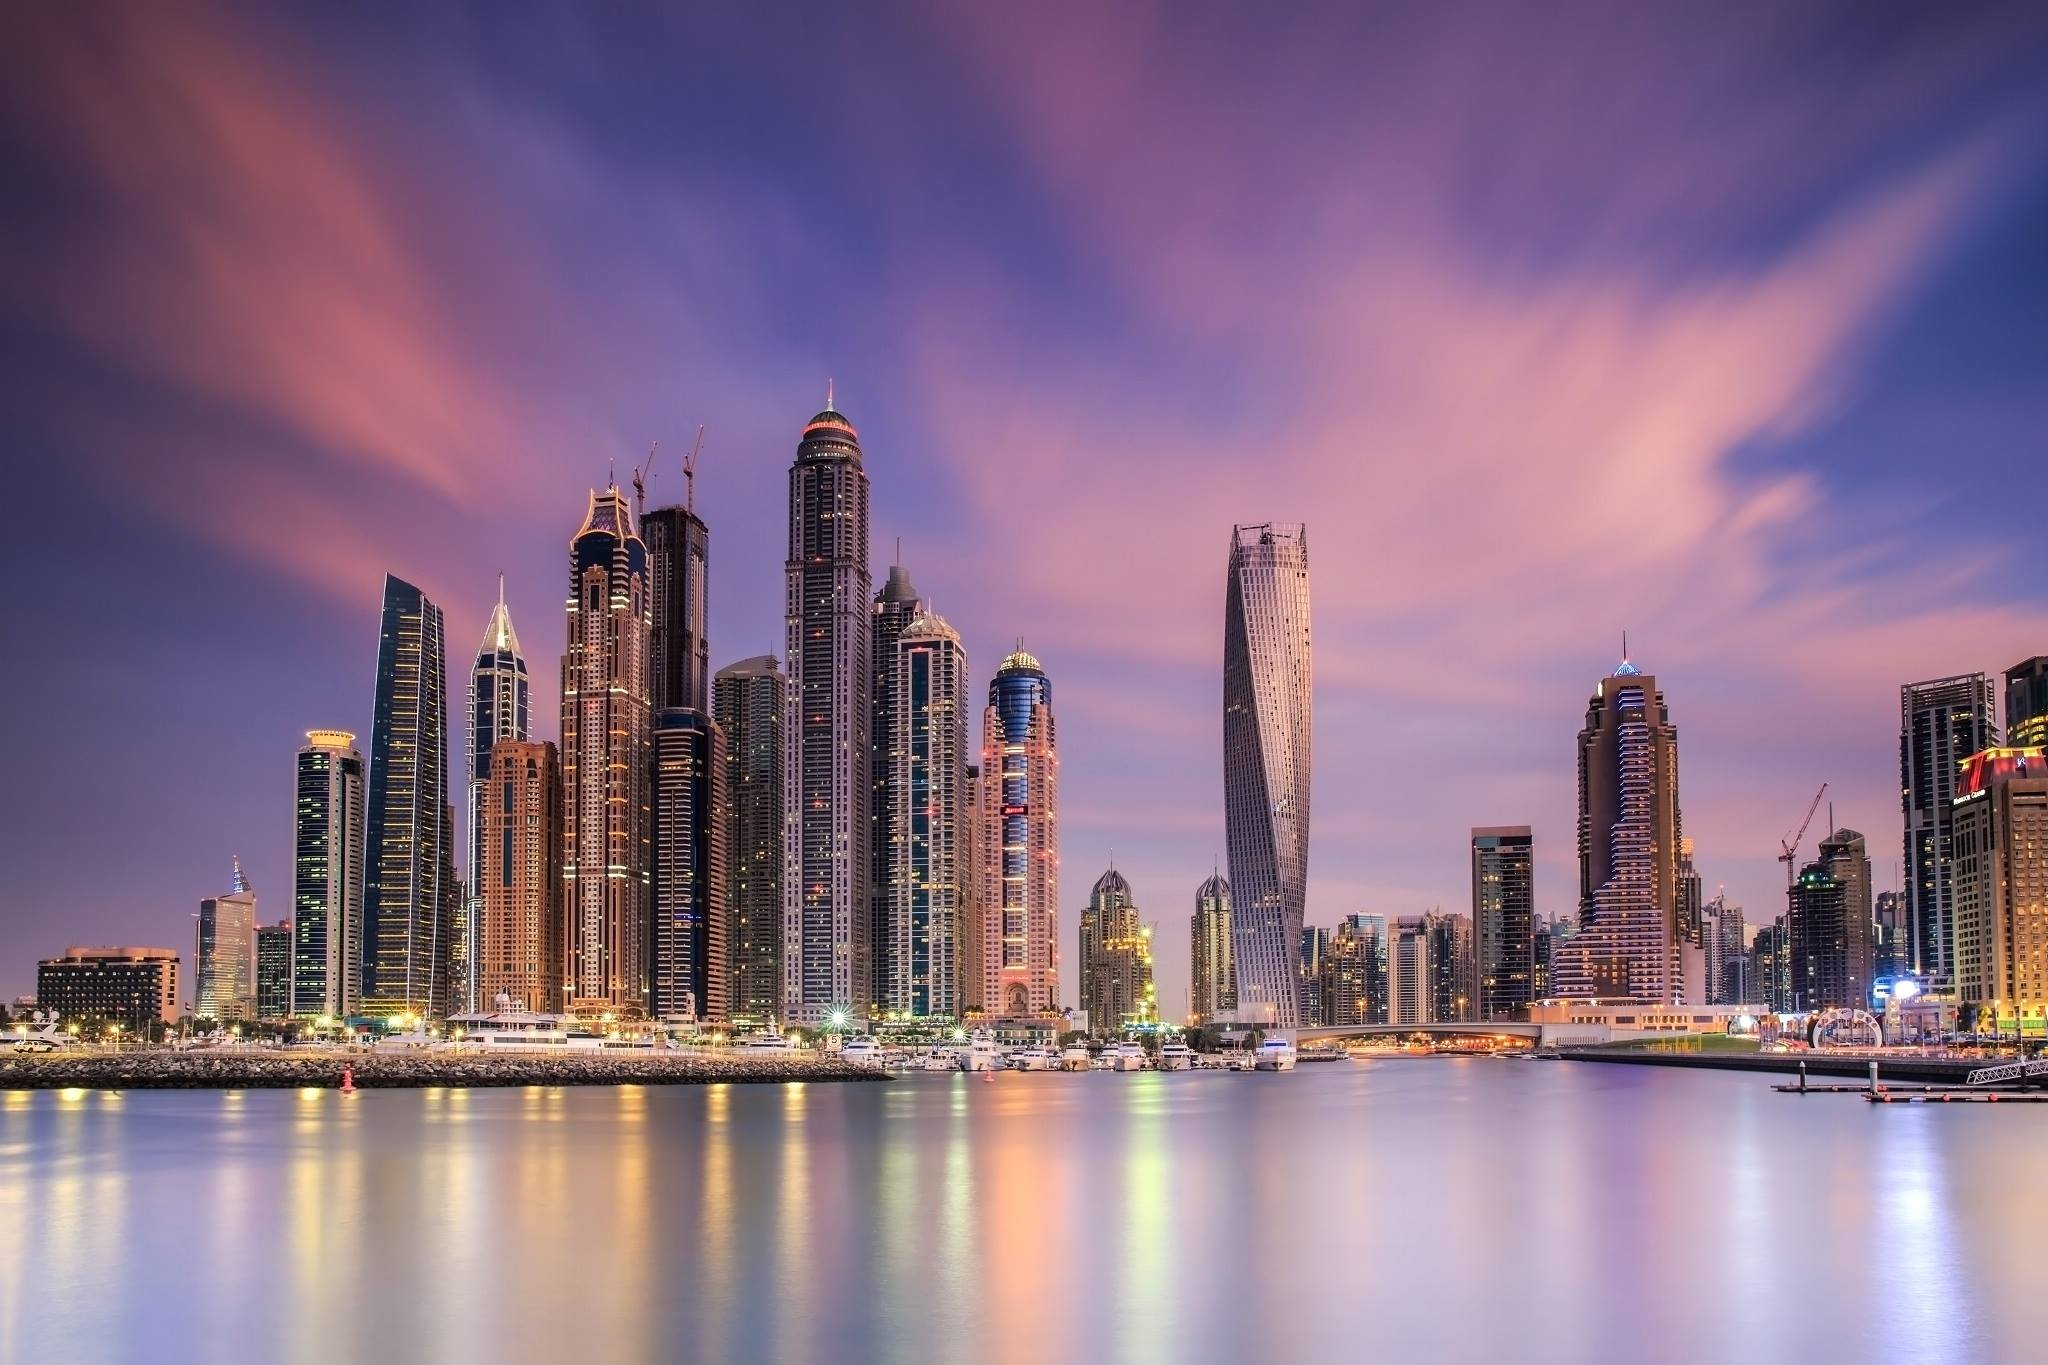 Dubai, United Arab Emirates - Marina